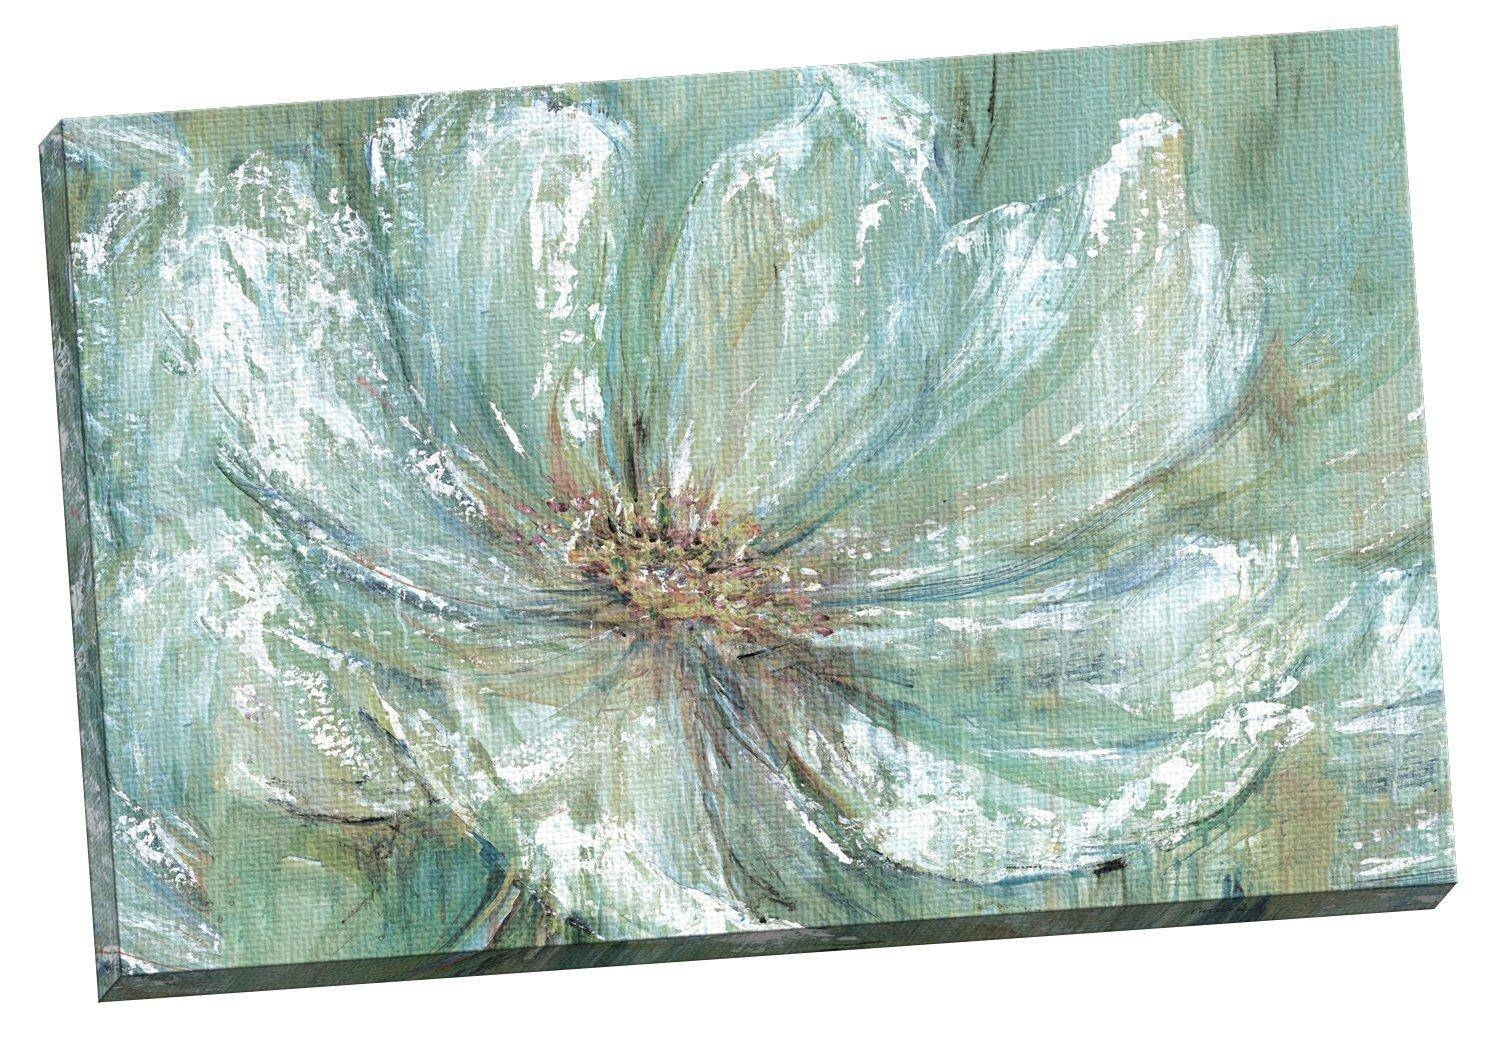 Appealing Teal And Gray Canvas Art Split Canvas Wall Art Wall For Best And Newest Large Teal Wall Art (View 9 of 20)